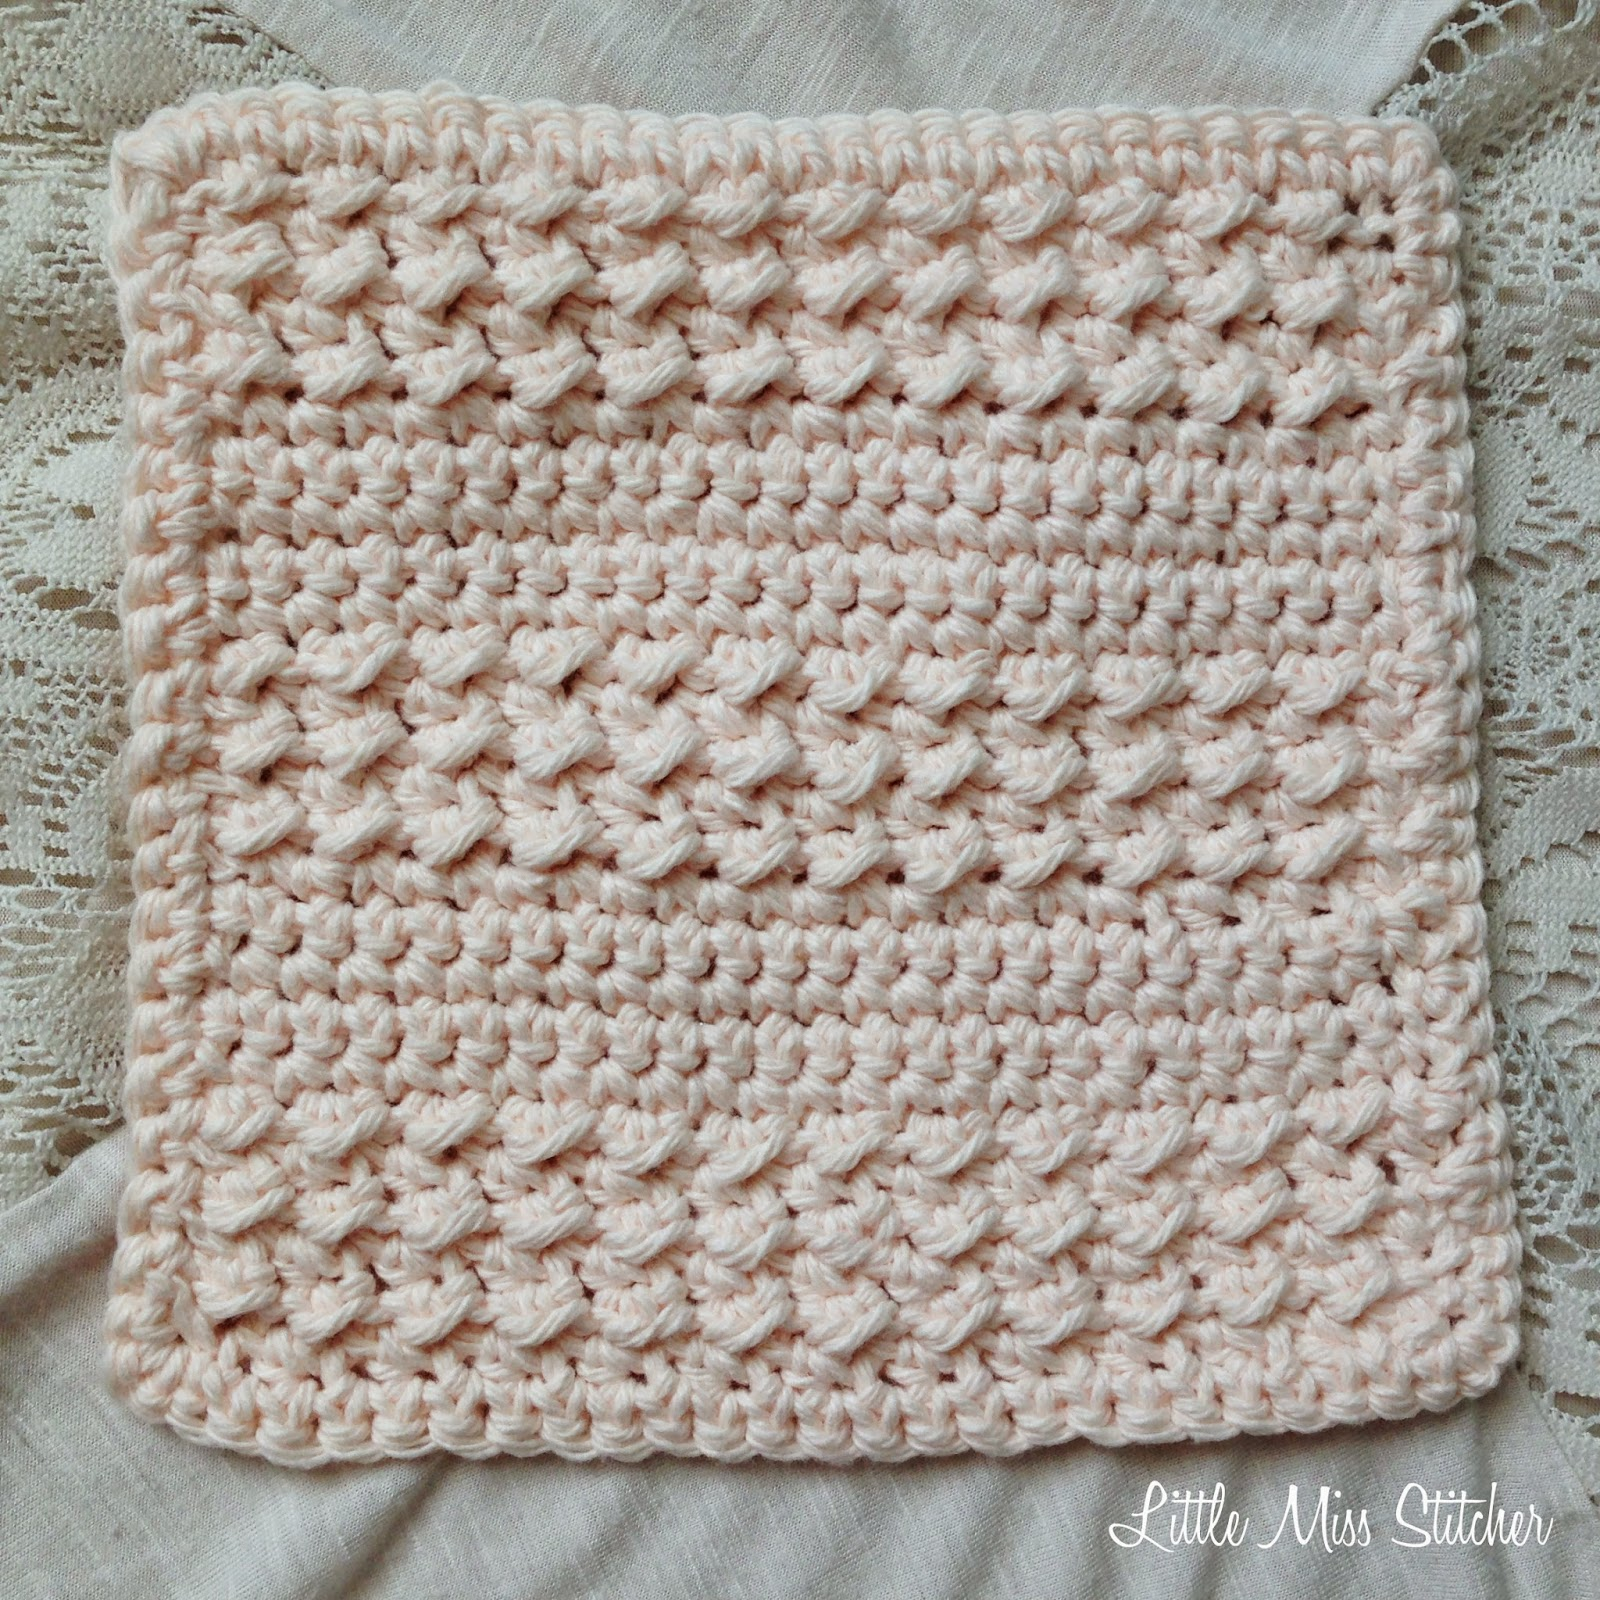 Free Crochet Pattern For Easy Dishcloth : Little Miss Stitcher: 5 Free Crochet Dishcloth Patterns